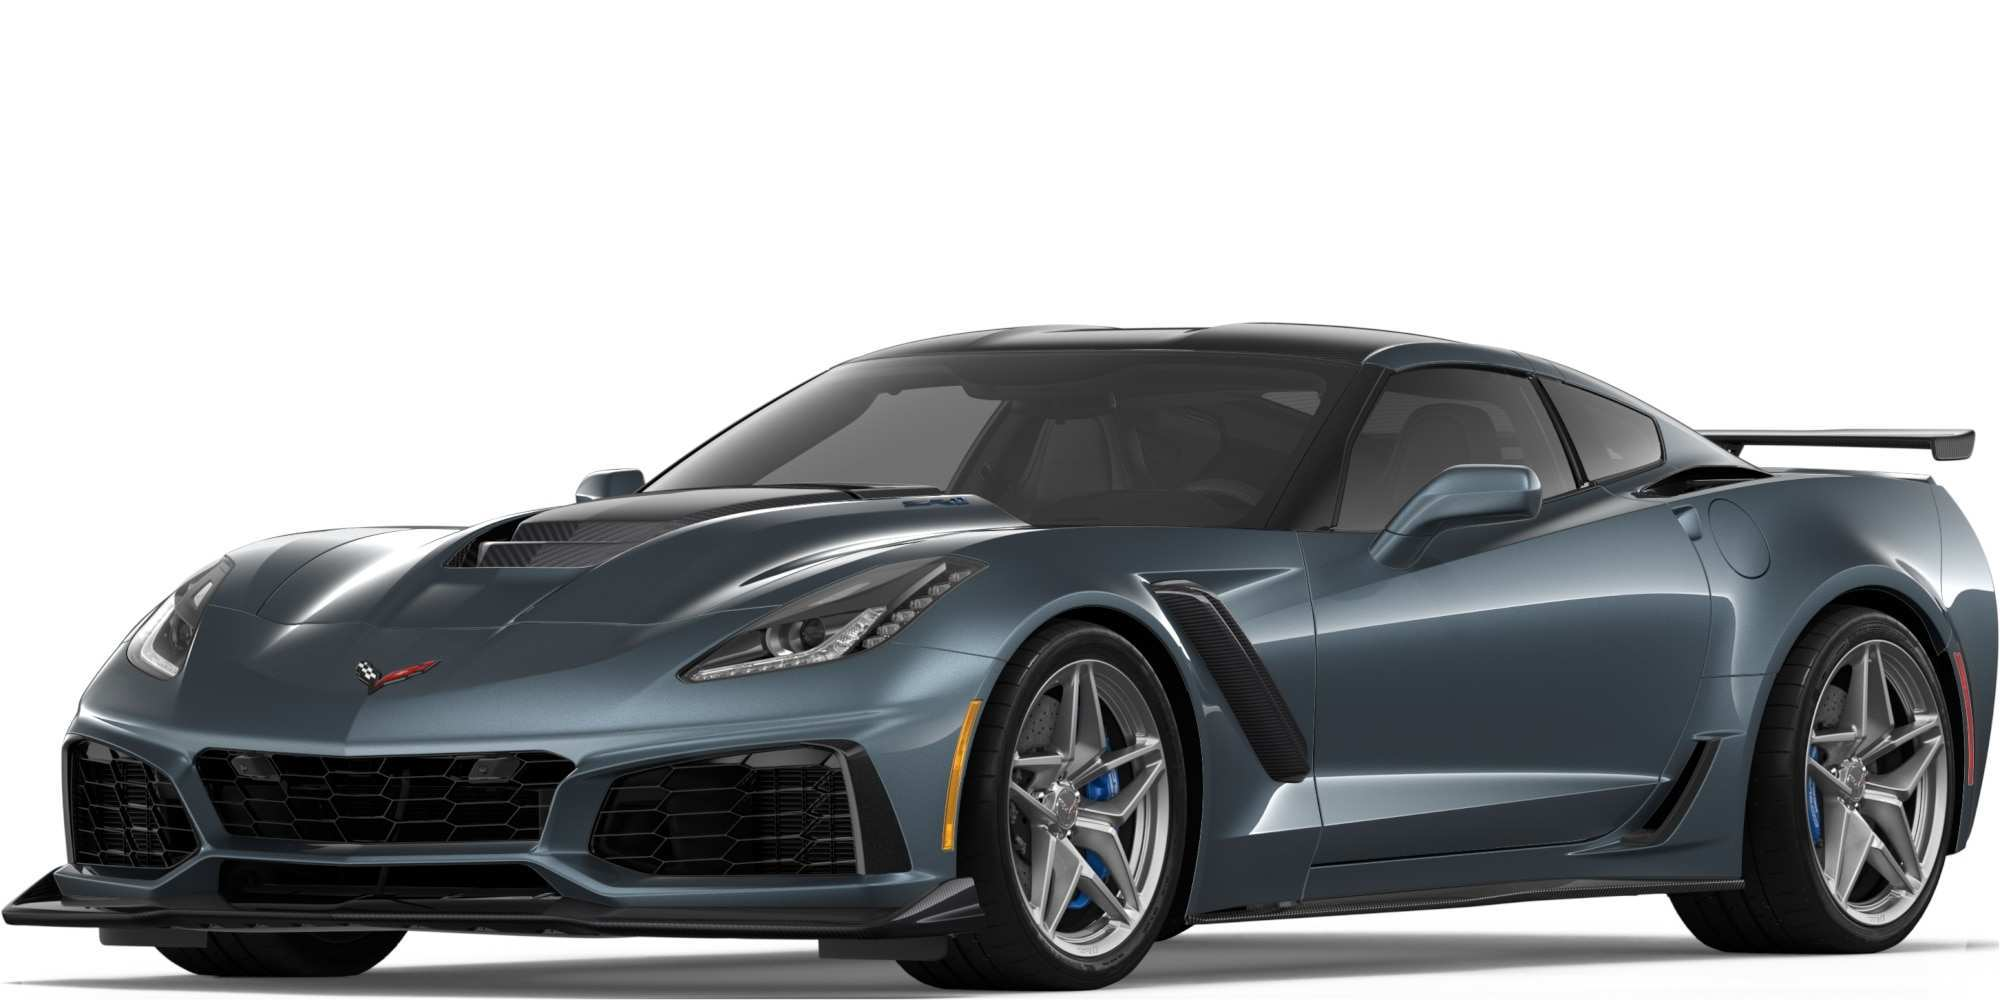 20 The Best 2019 Chevrolet Corvette Zr1 Price And Review